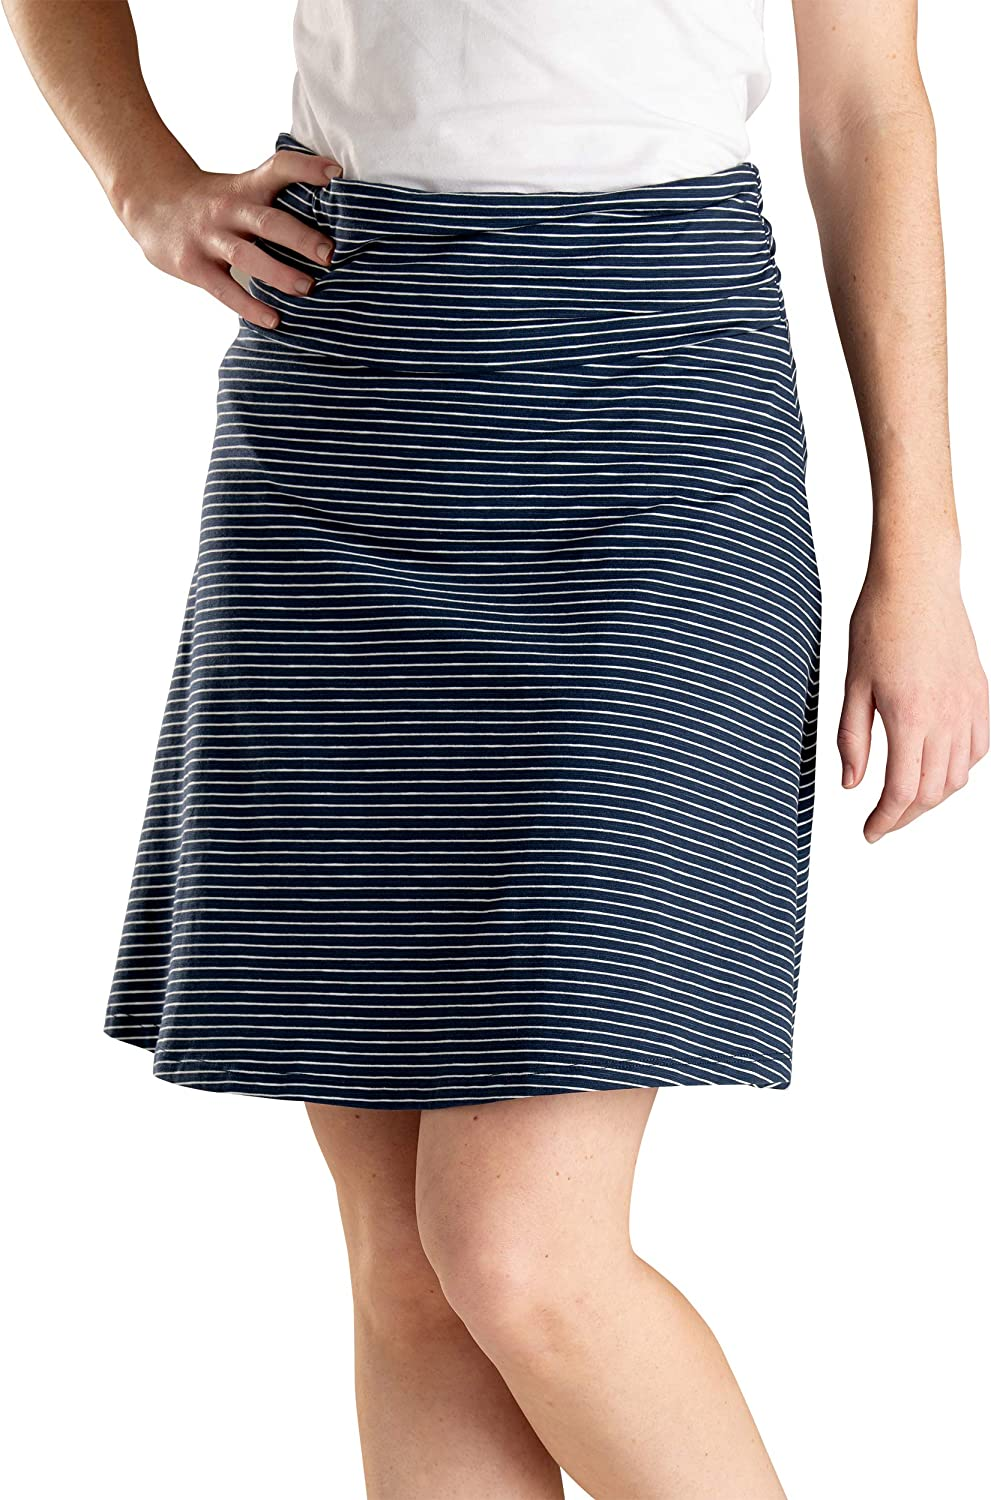 Toad&Co Chaka Skirt - Women's at  Women's Clothing store